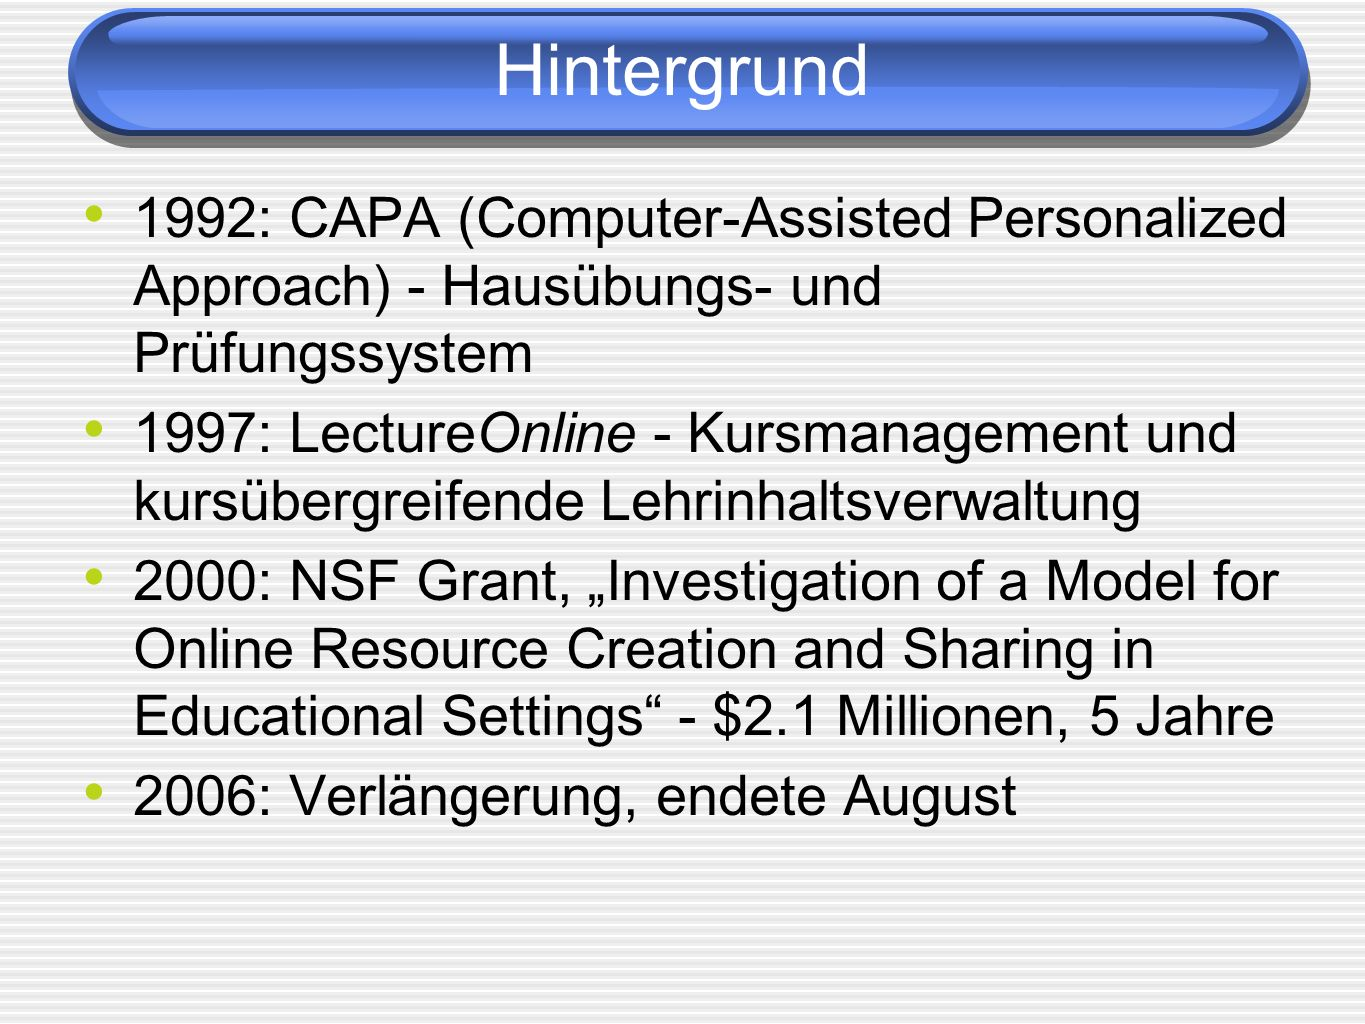 Hintergrund 1992: CAPA (Computer-Assisted Personalized Approach) - Hausübungs- und Prüfungssystem.